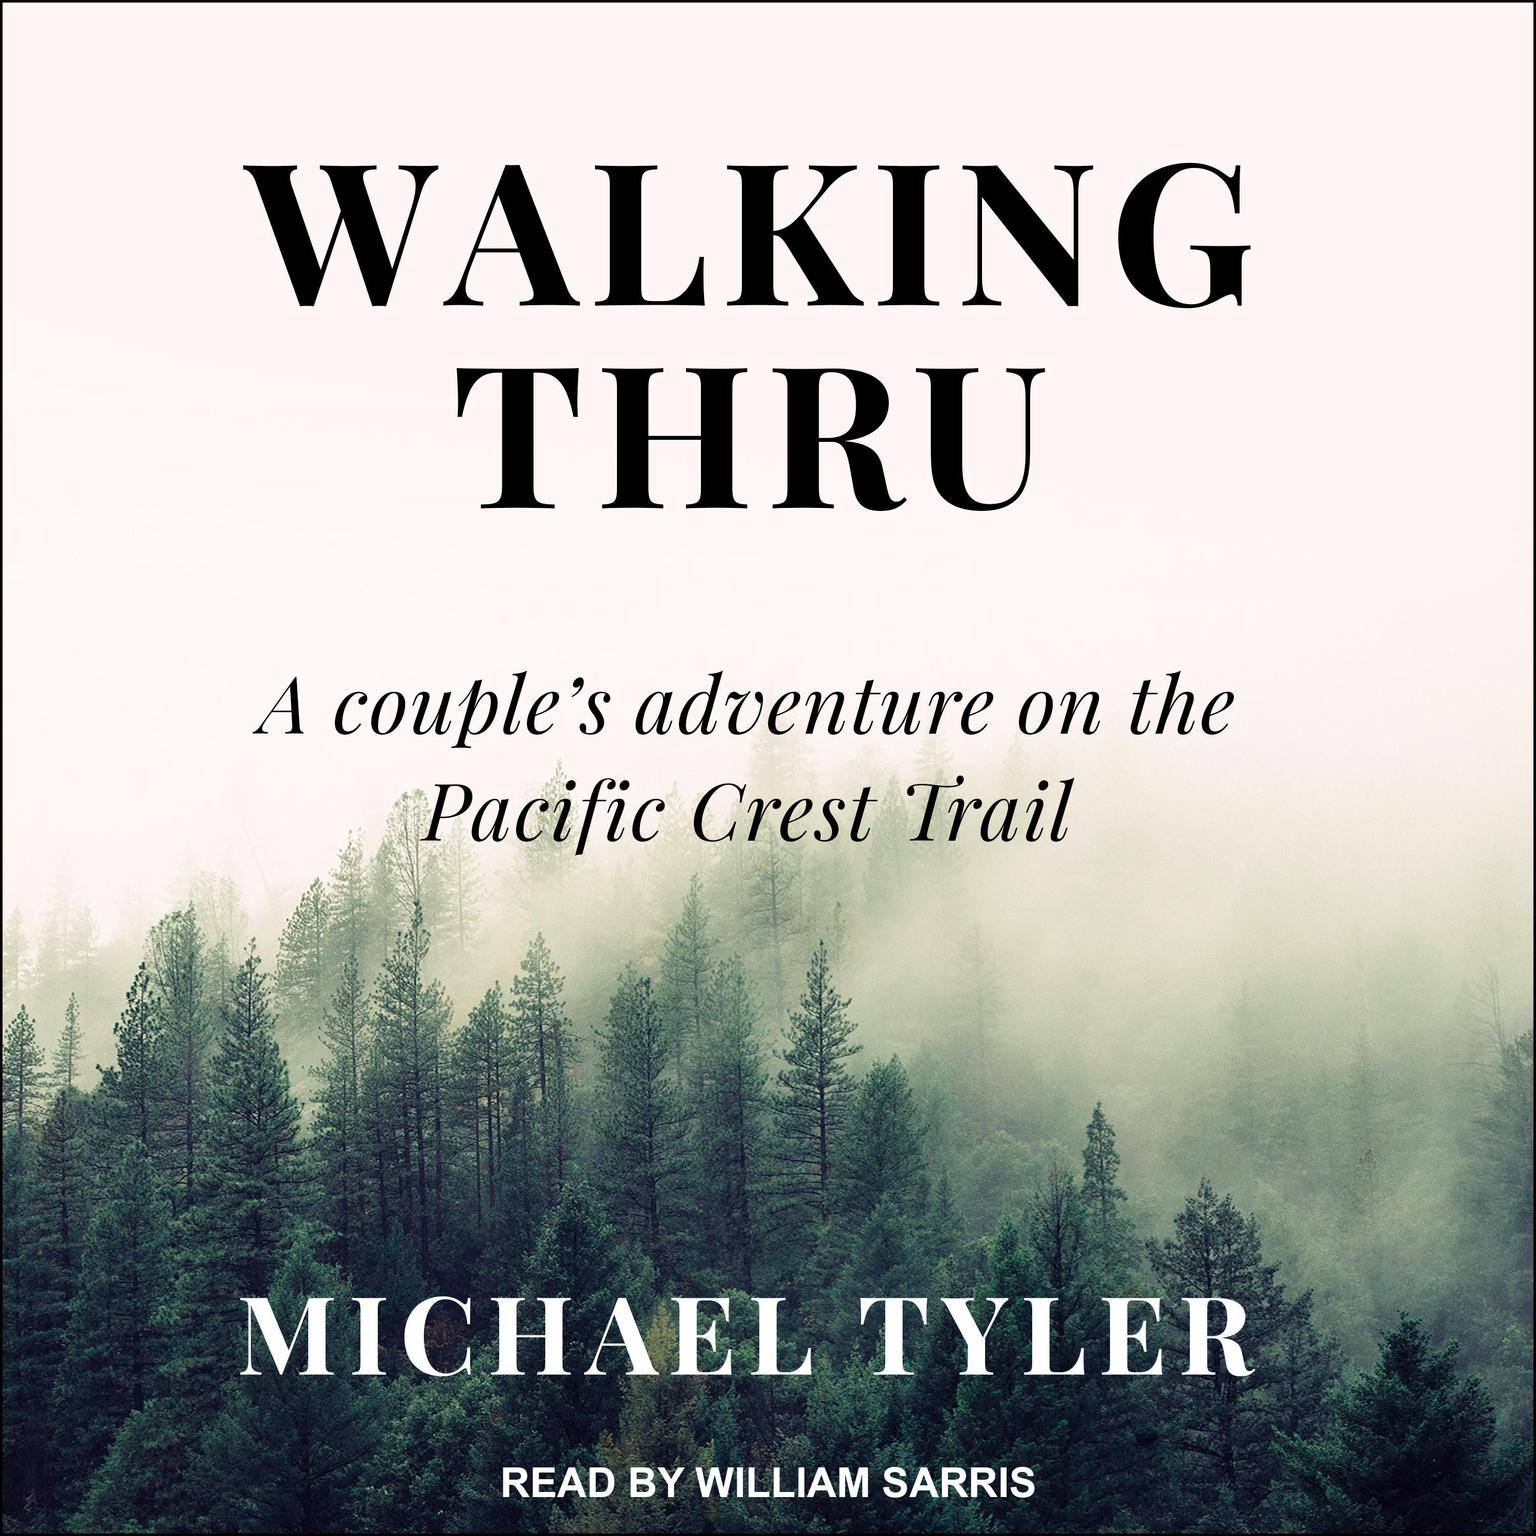 Printable Walking Thru: A Couple's Adventure on the Pacific Crest Trail Audiobook Cover Art